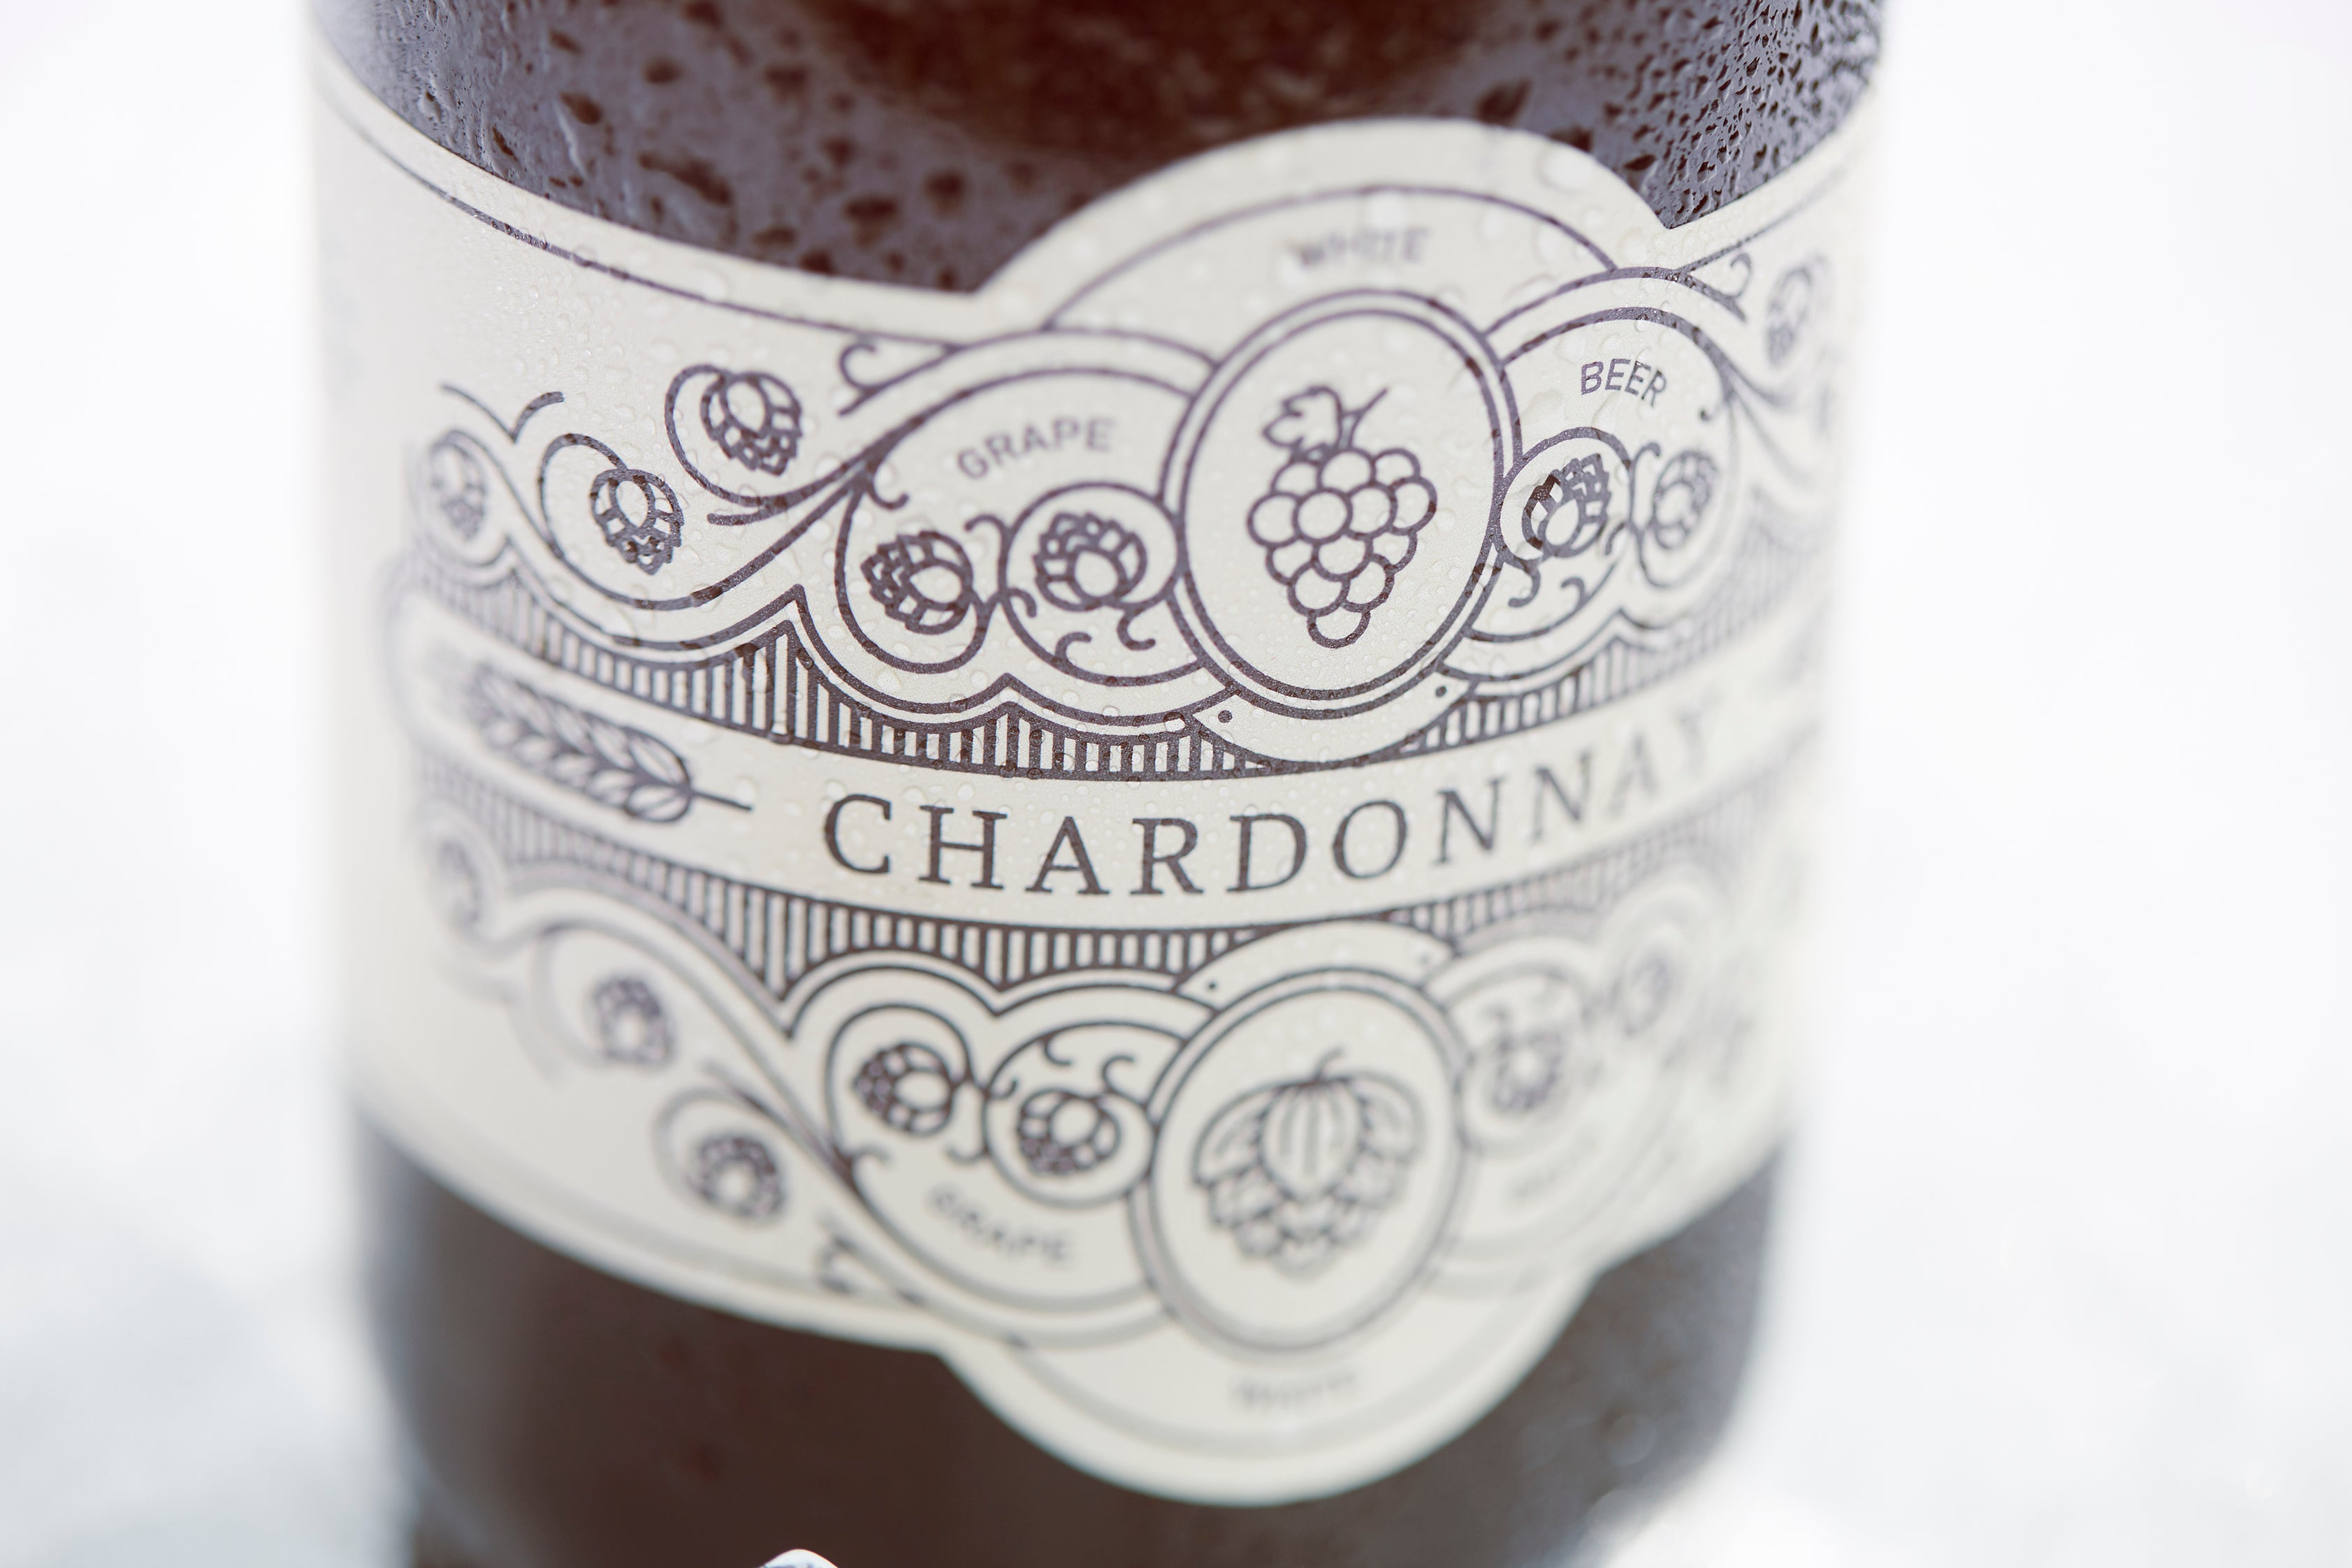 Chardonnay Grape Beer (Caja de 6 botellas de 75cl)